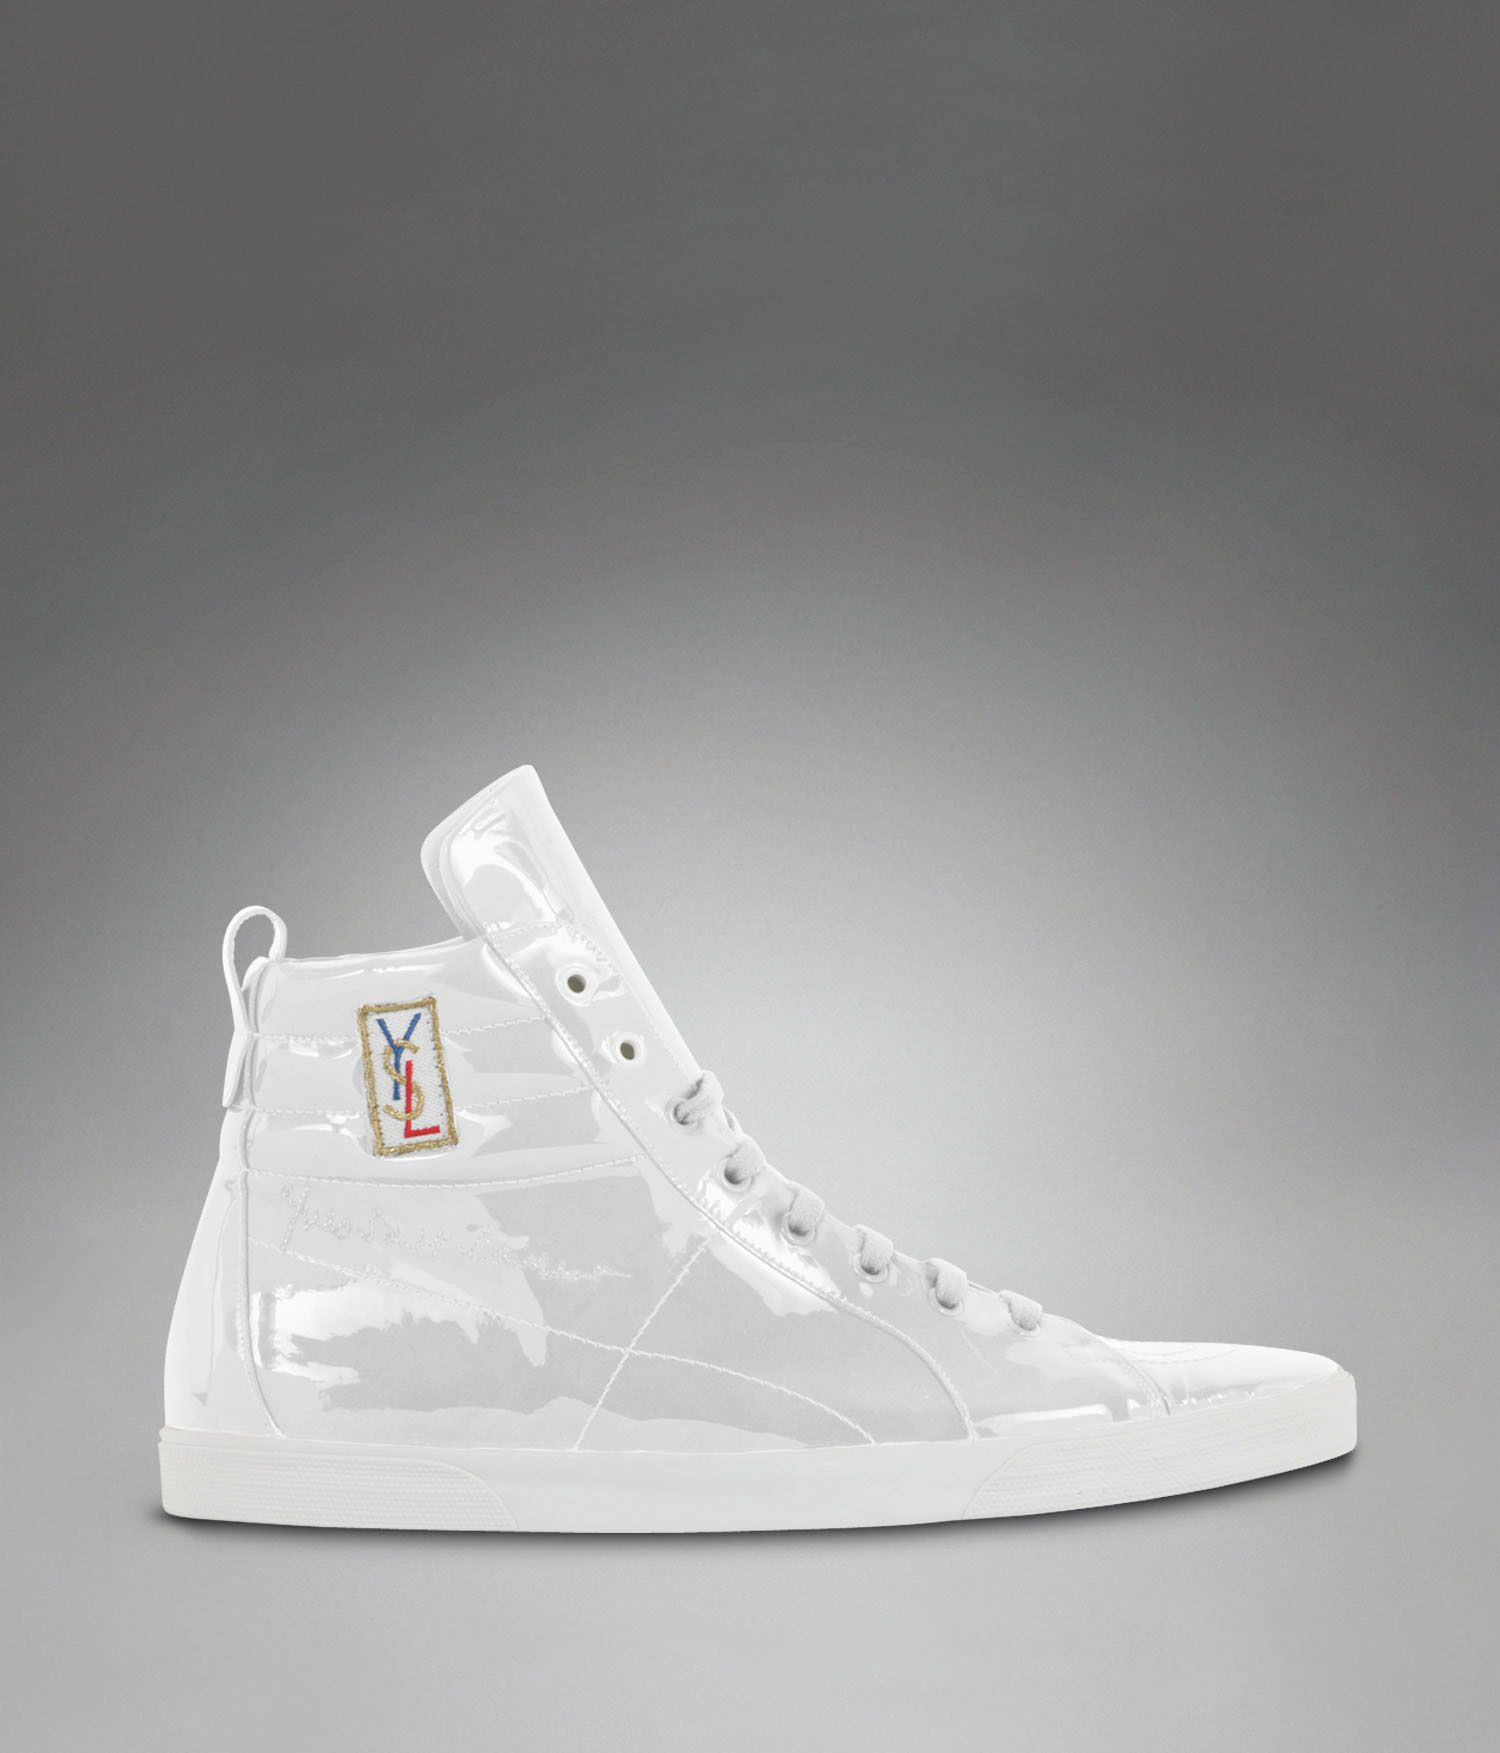 watch d99a4 7b244 YSL Classic High-top Sneaker in White Patent Leather - Sneakers – Shoes –  Men – Yves Saint Laurent – www.ysl.com